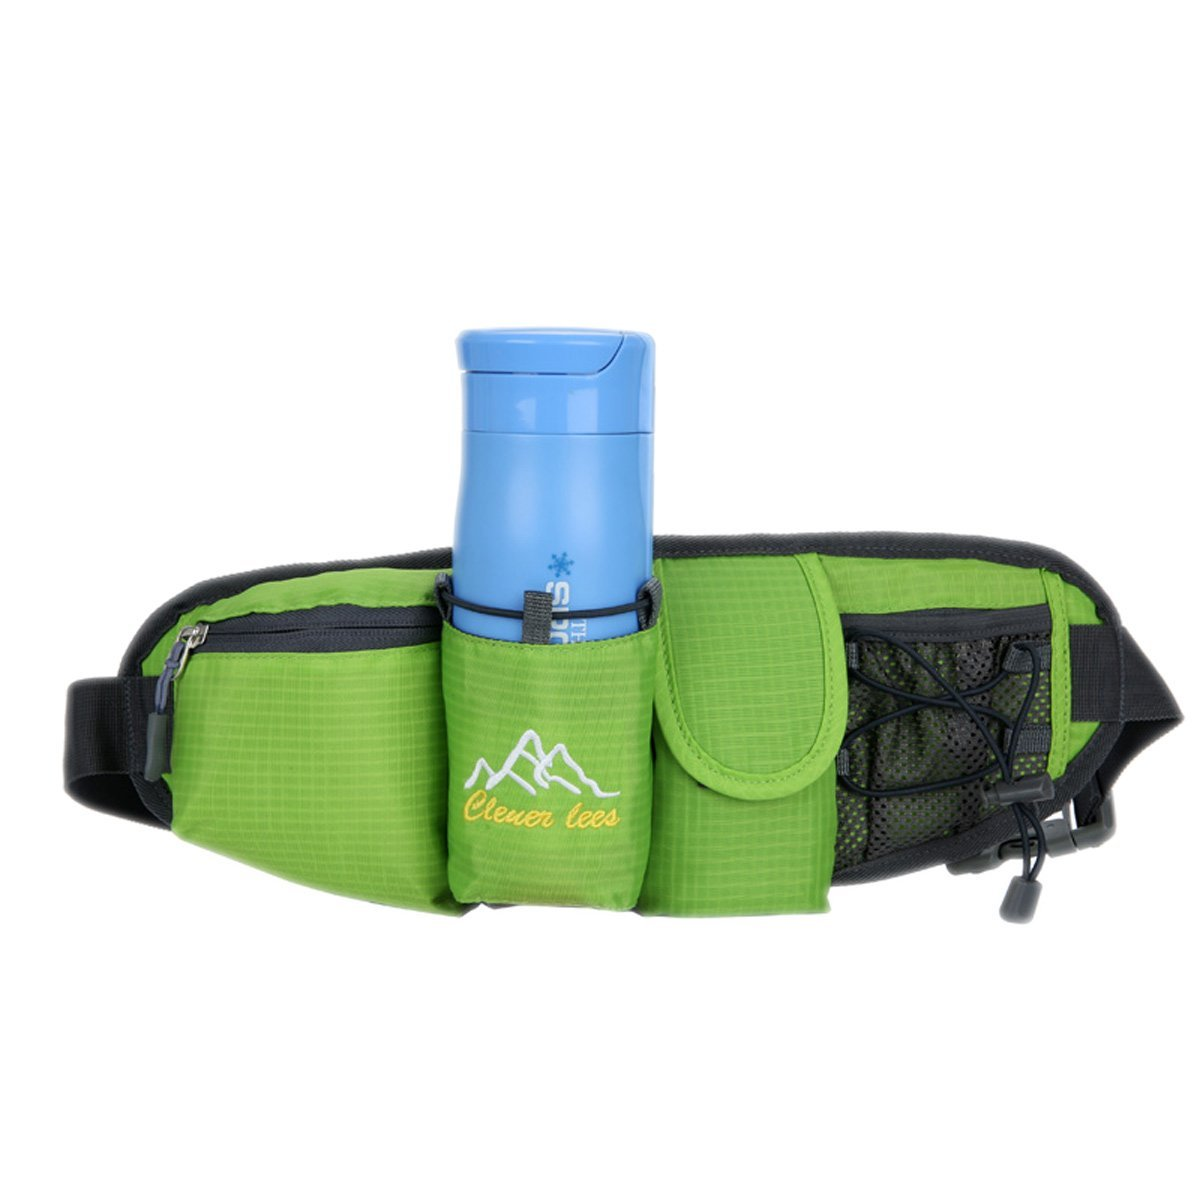 Sport Waist bag,Unisex Water Resistant Fanny Pack,Hiking Cycling Waist Pack, Multifunction Outdoor Lumbar Pack Bag, Bum Bag for Travel